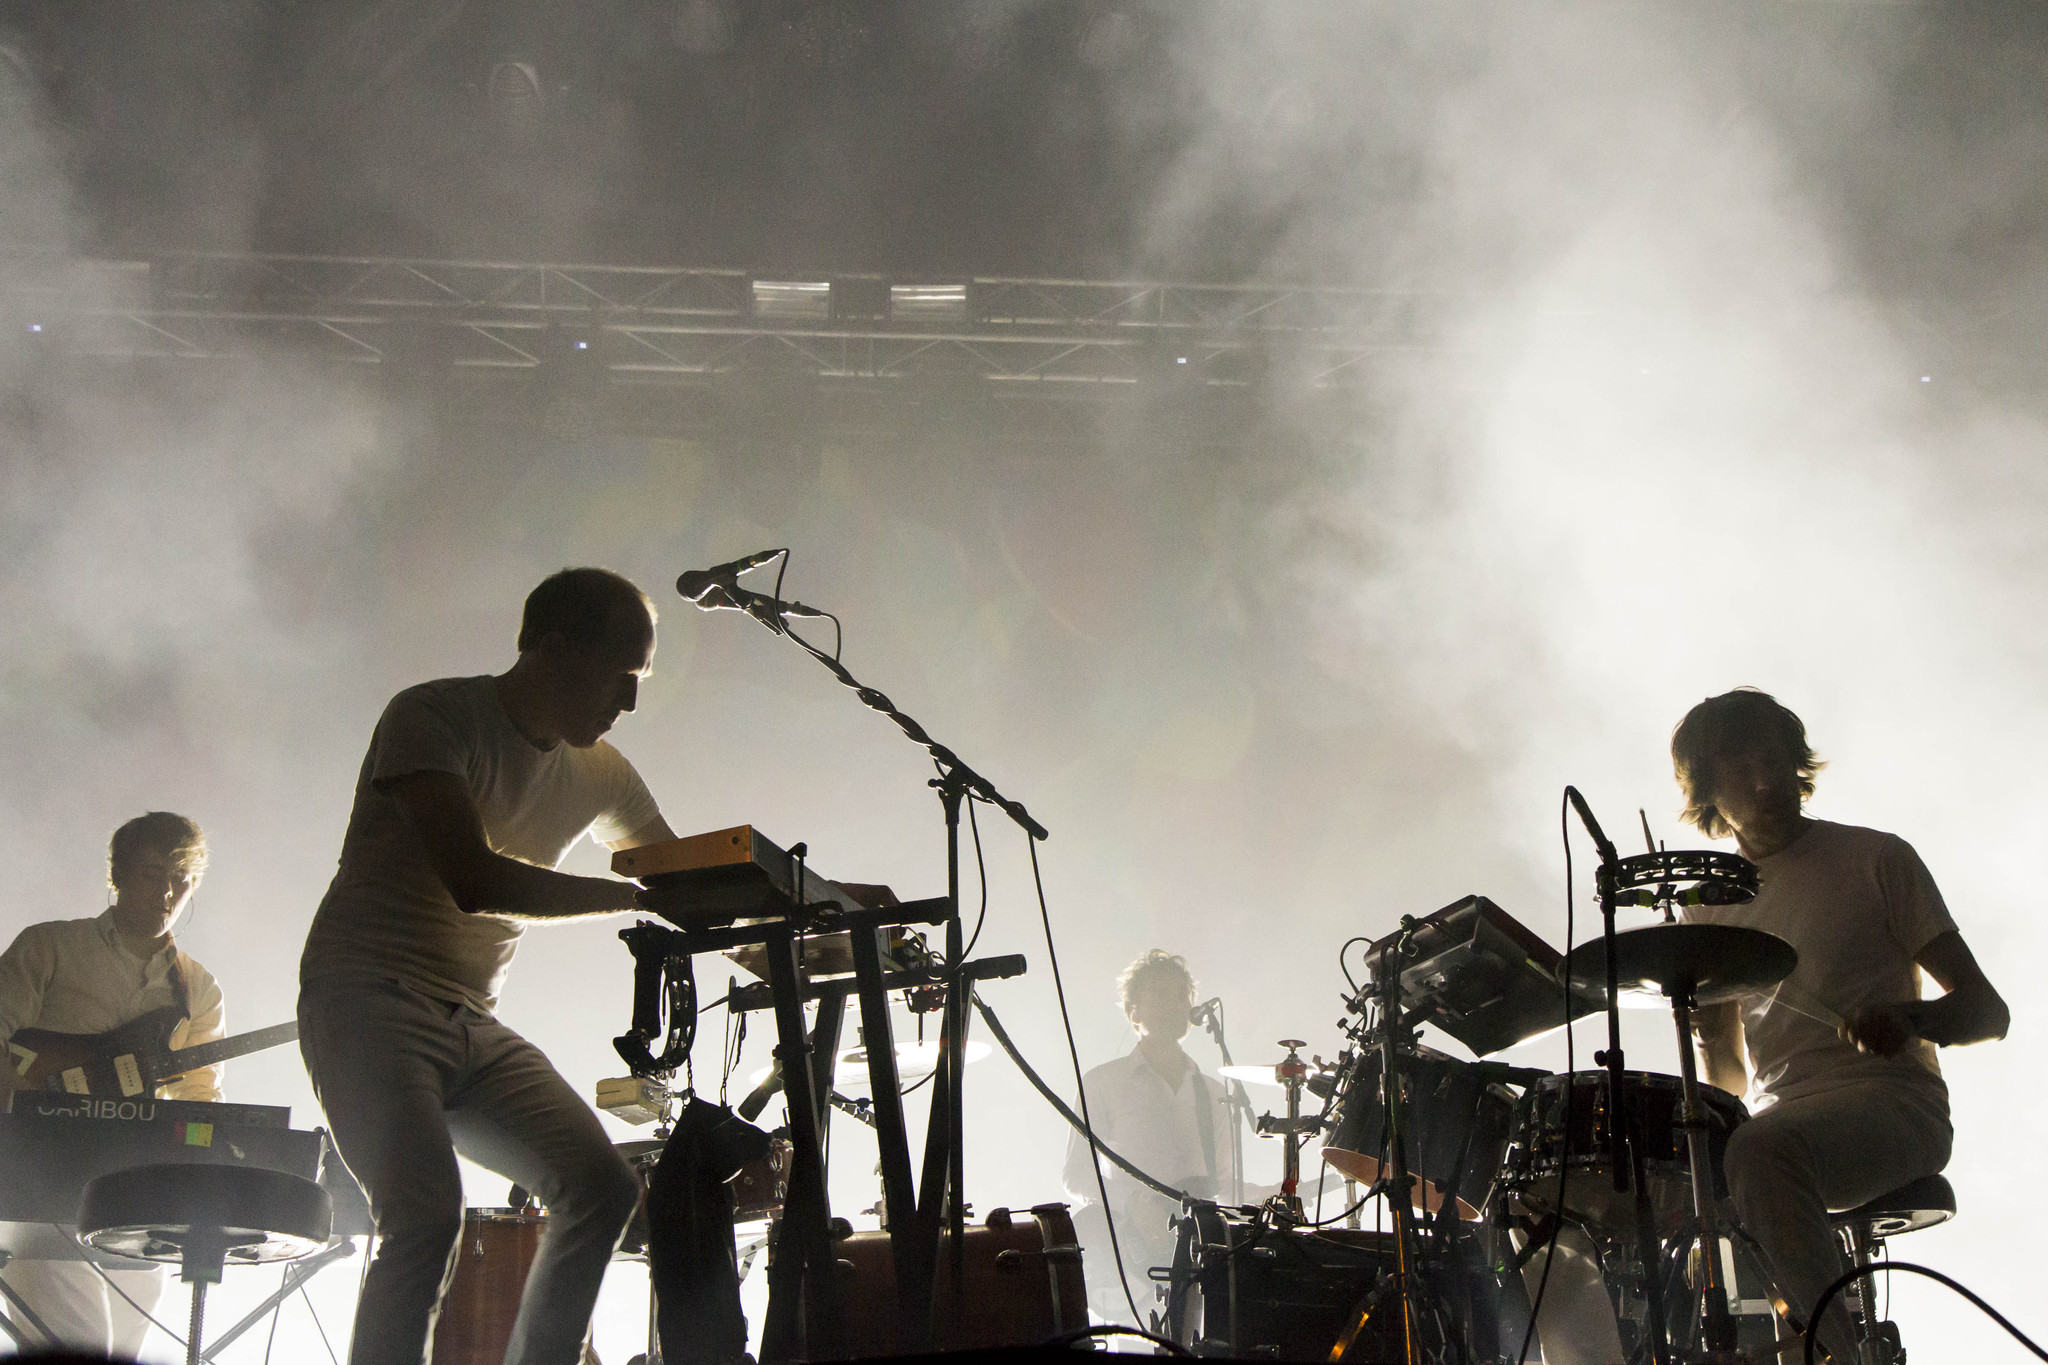 la-et-ms-primavera-sound-2015-wraps-up-longest-party-of-festival-year-20150531